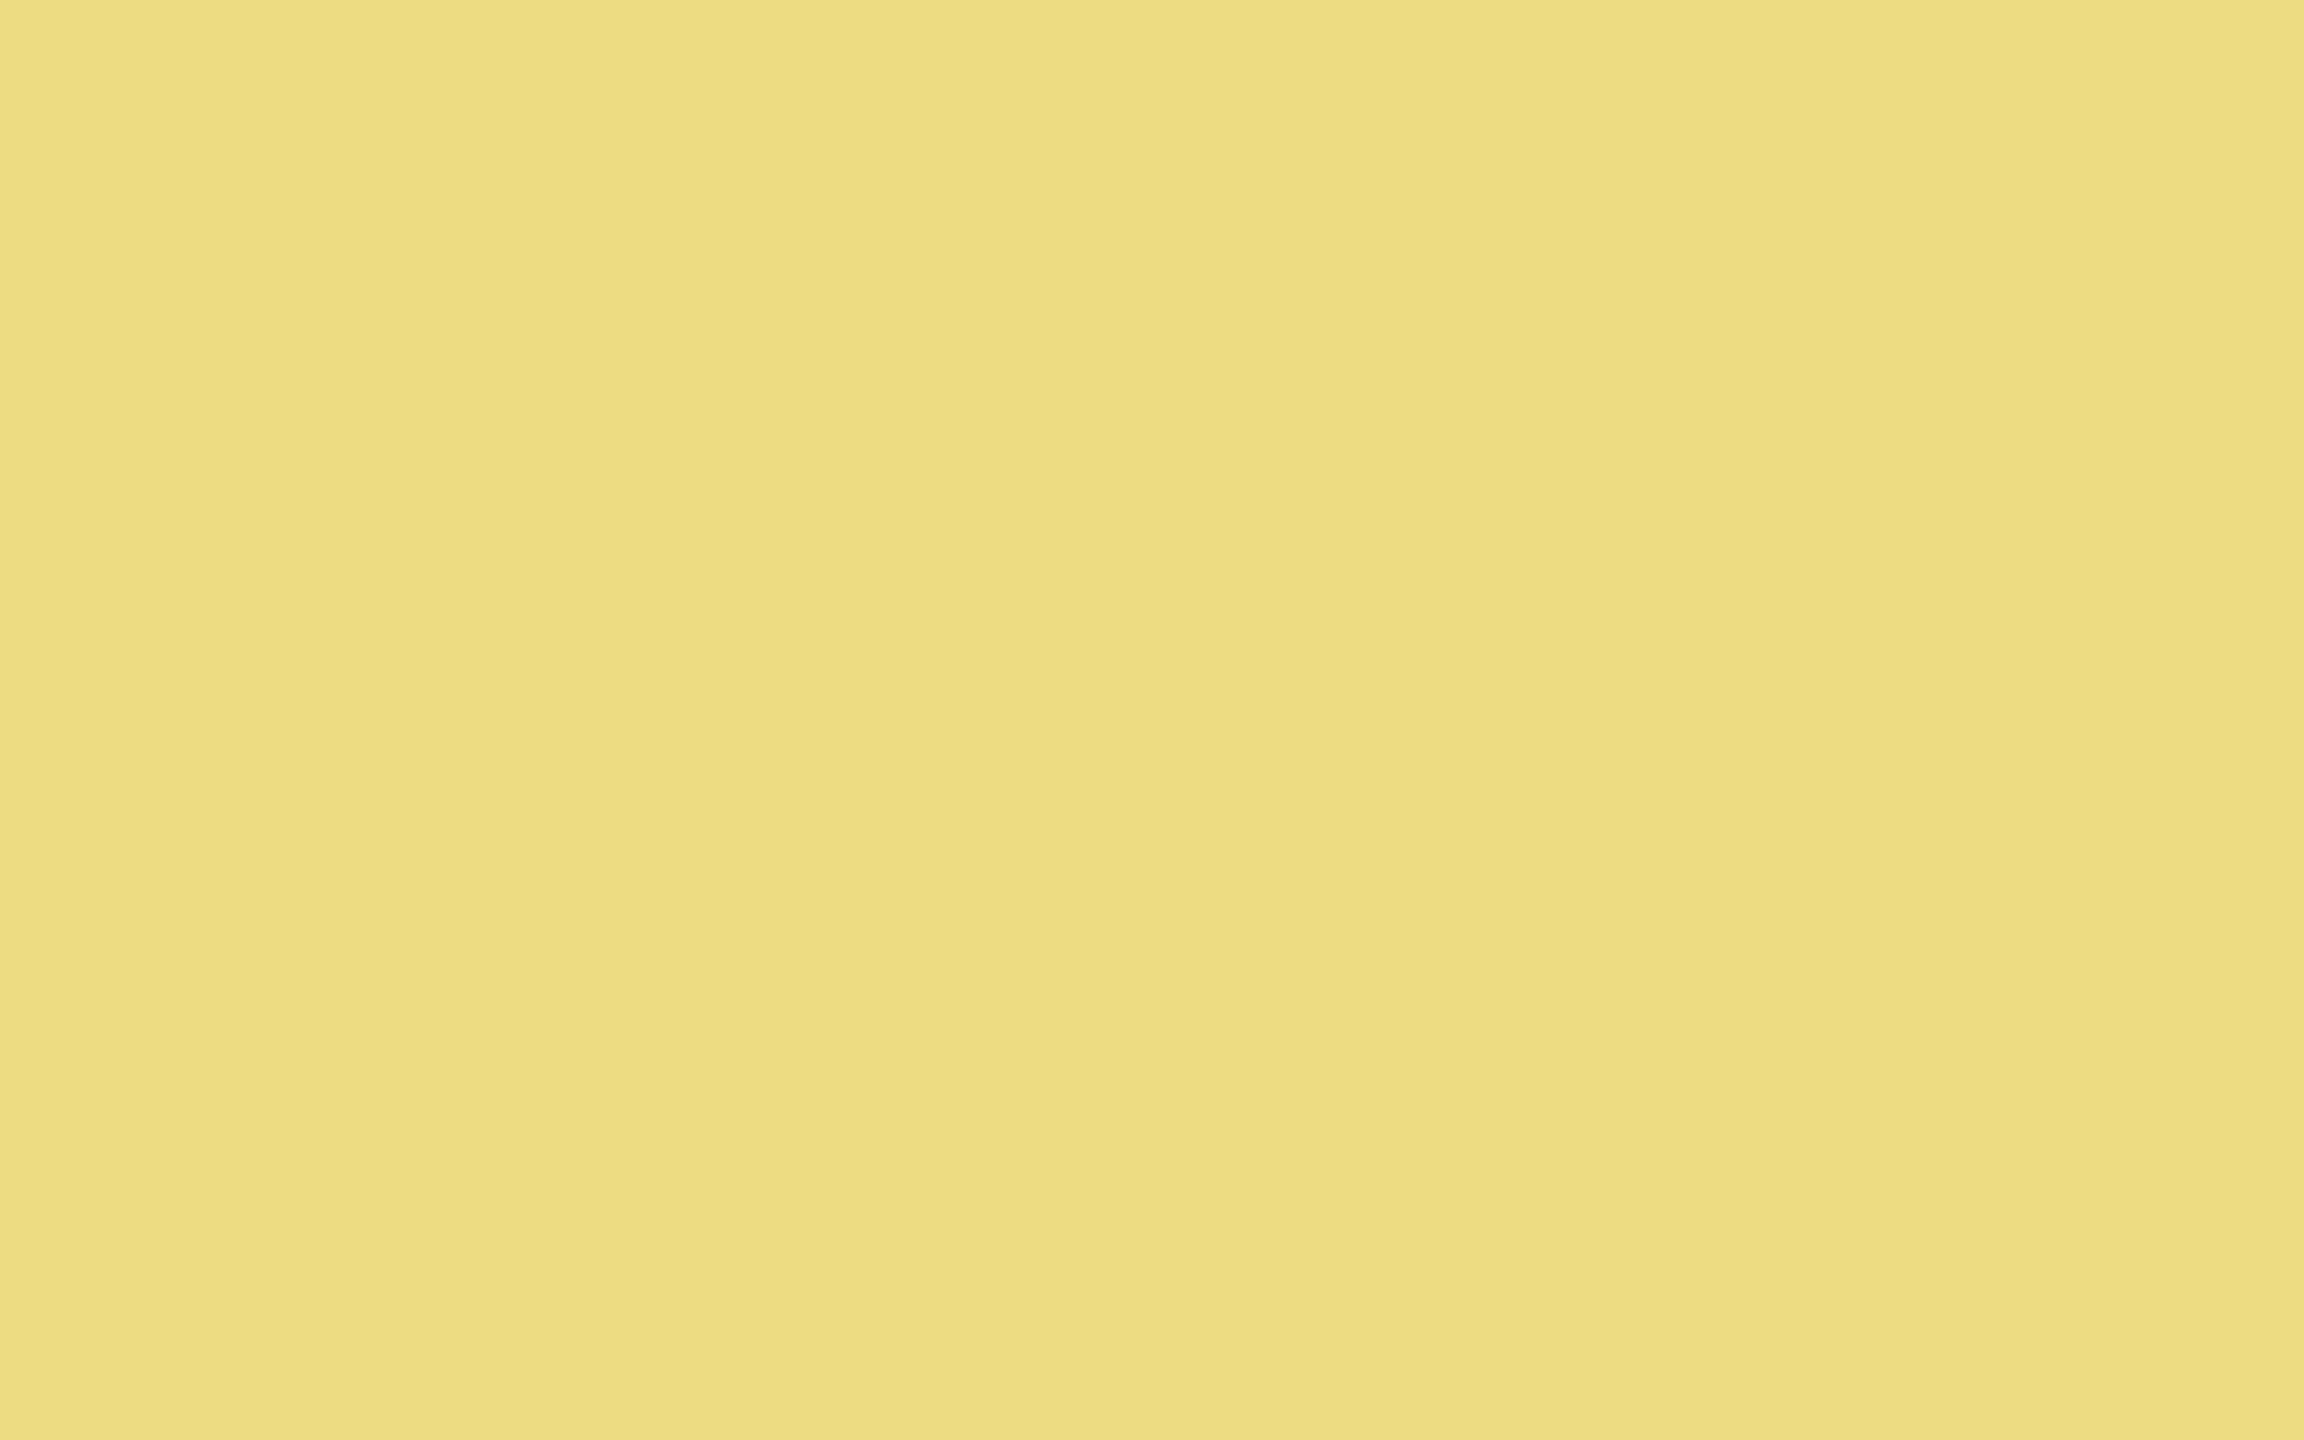 2304x1440 Flax Solid Color Background